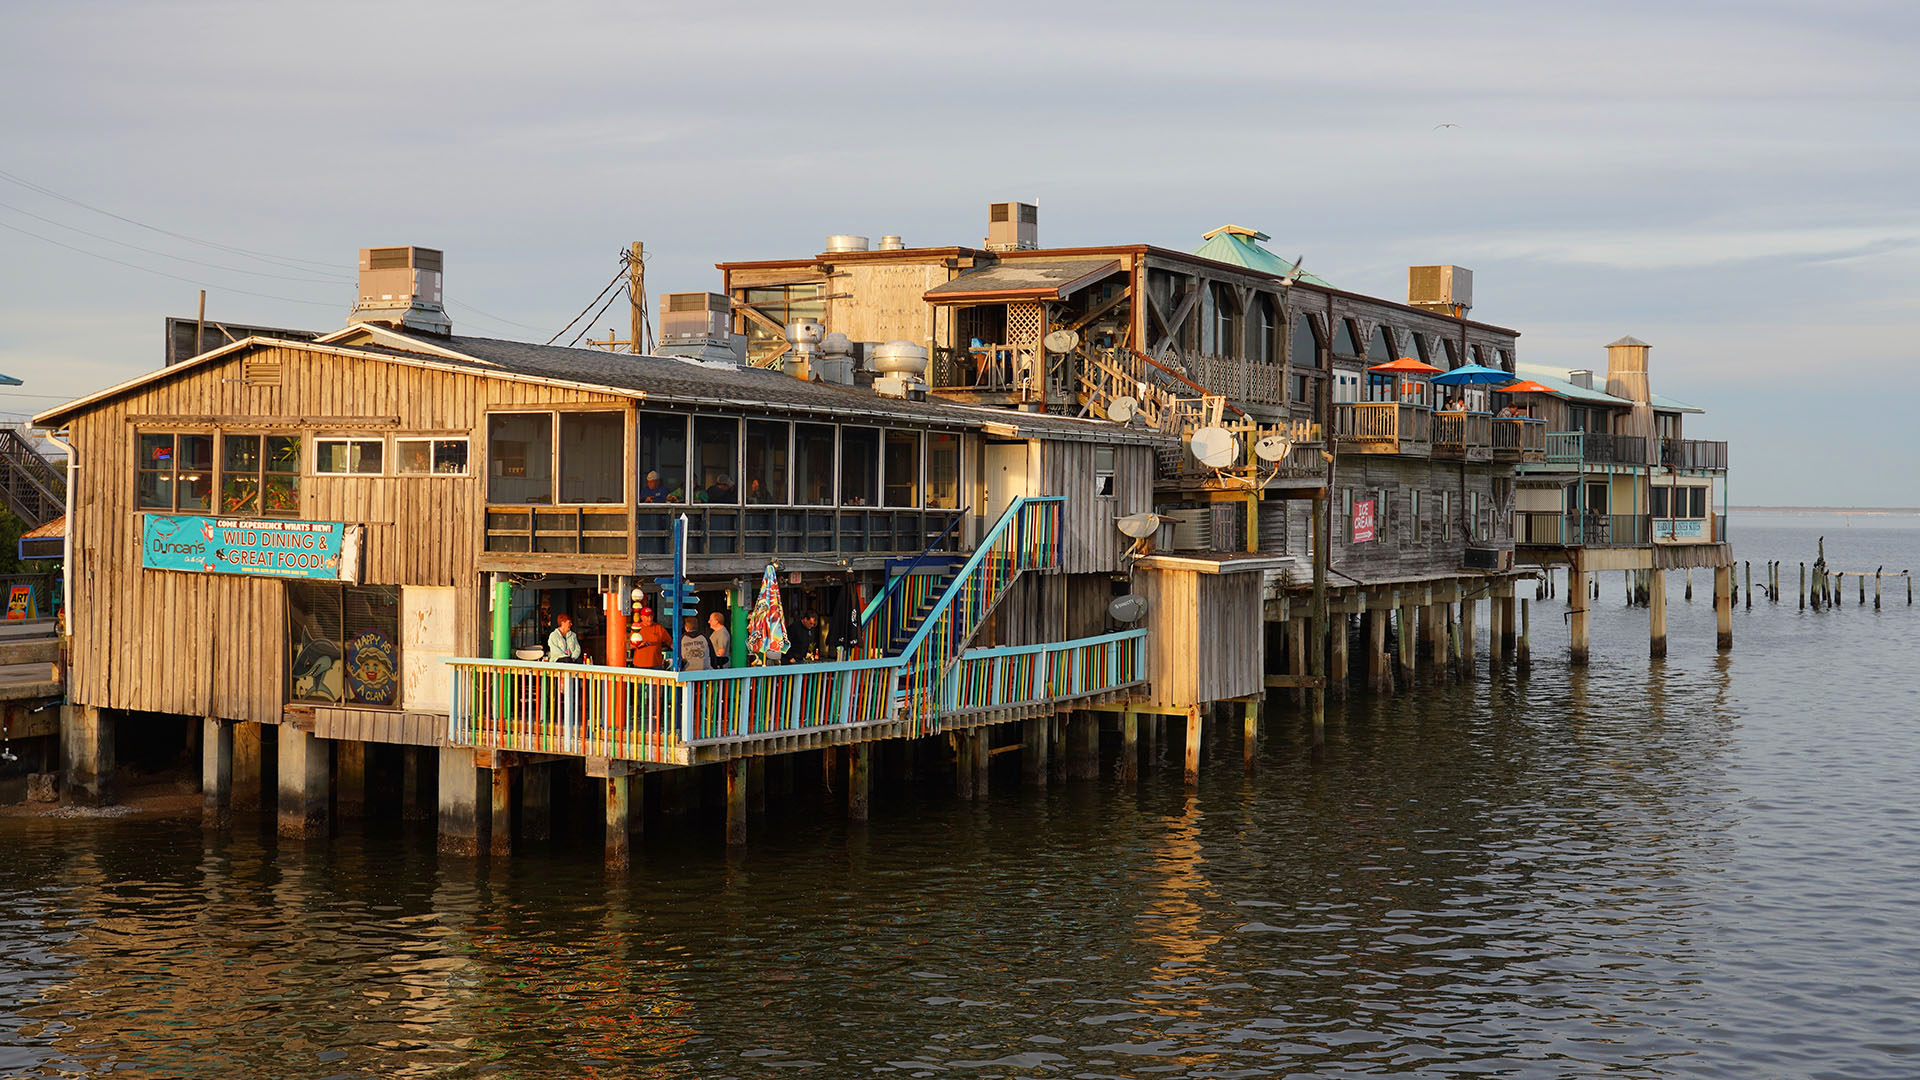 Waterfront buildings in historic downtown Cedar Key as seen from the fishing pier.